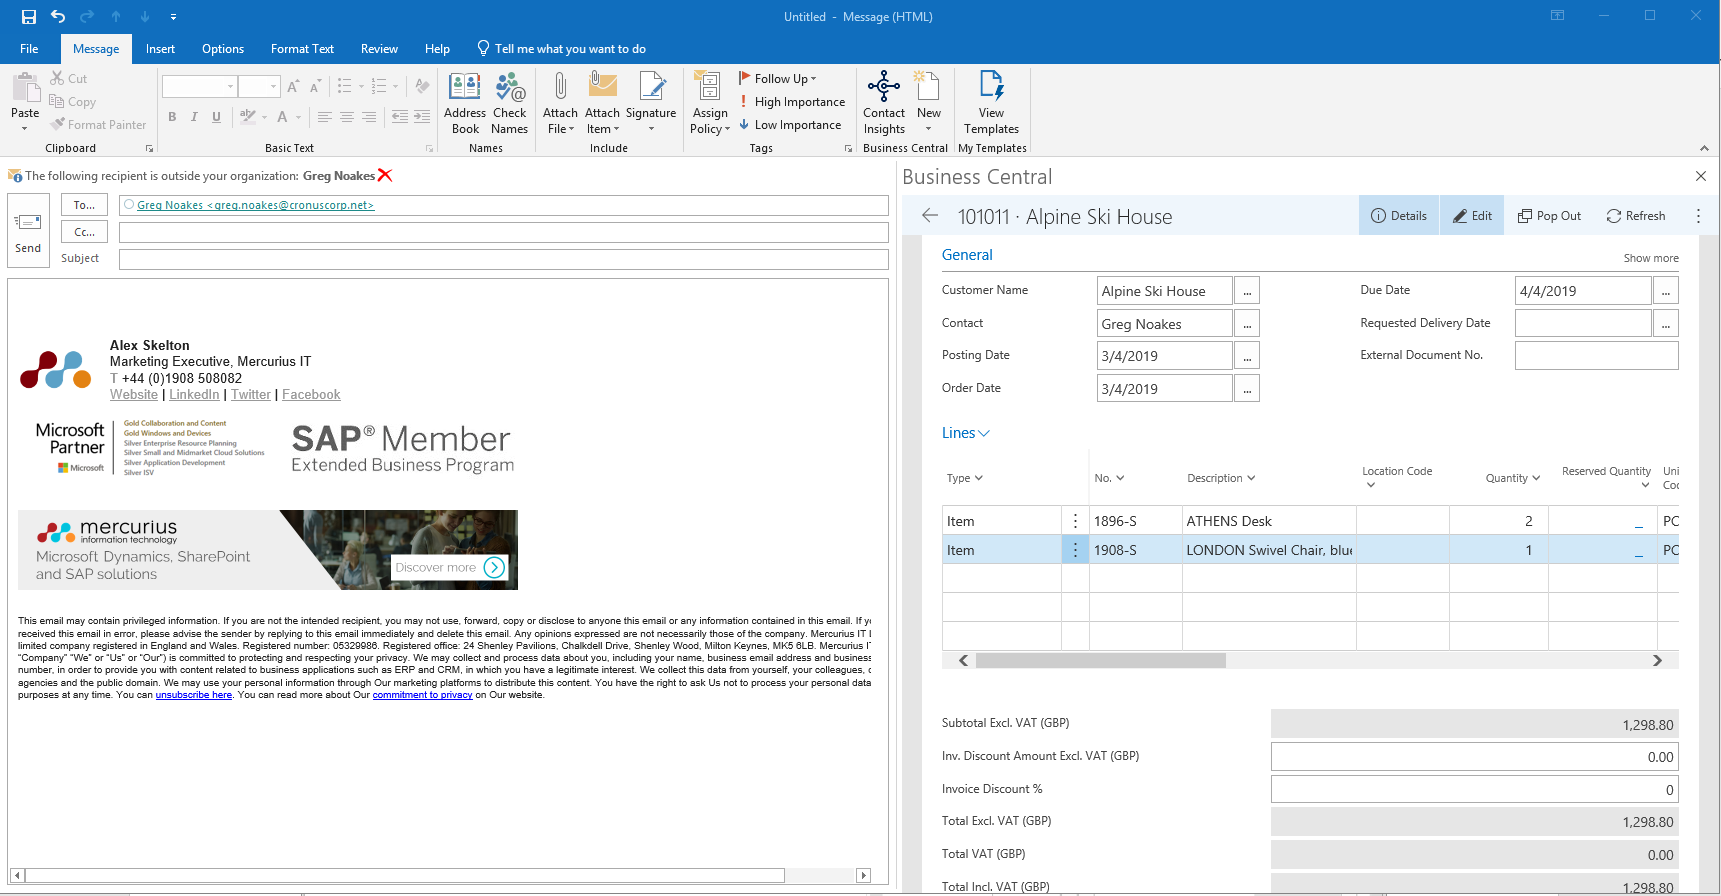 Creating a Business Central financial document directly in Outlook